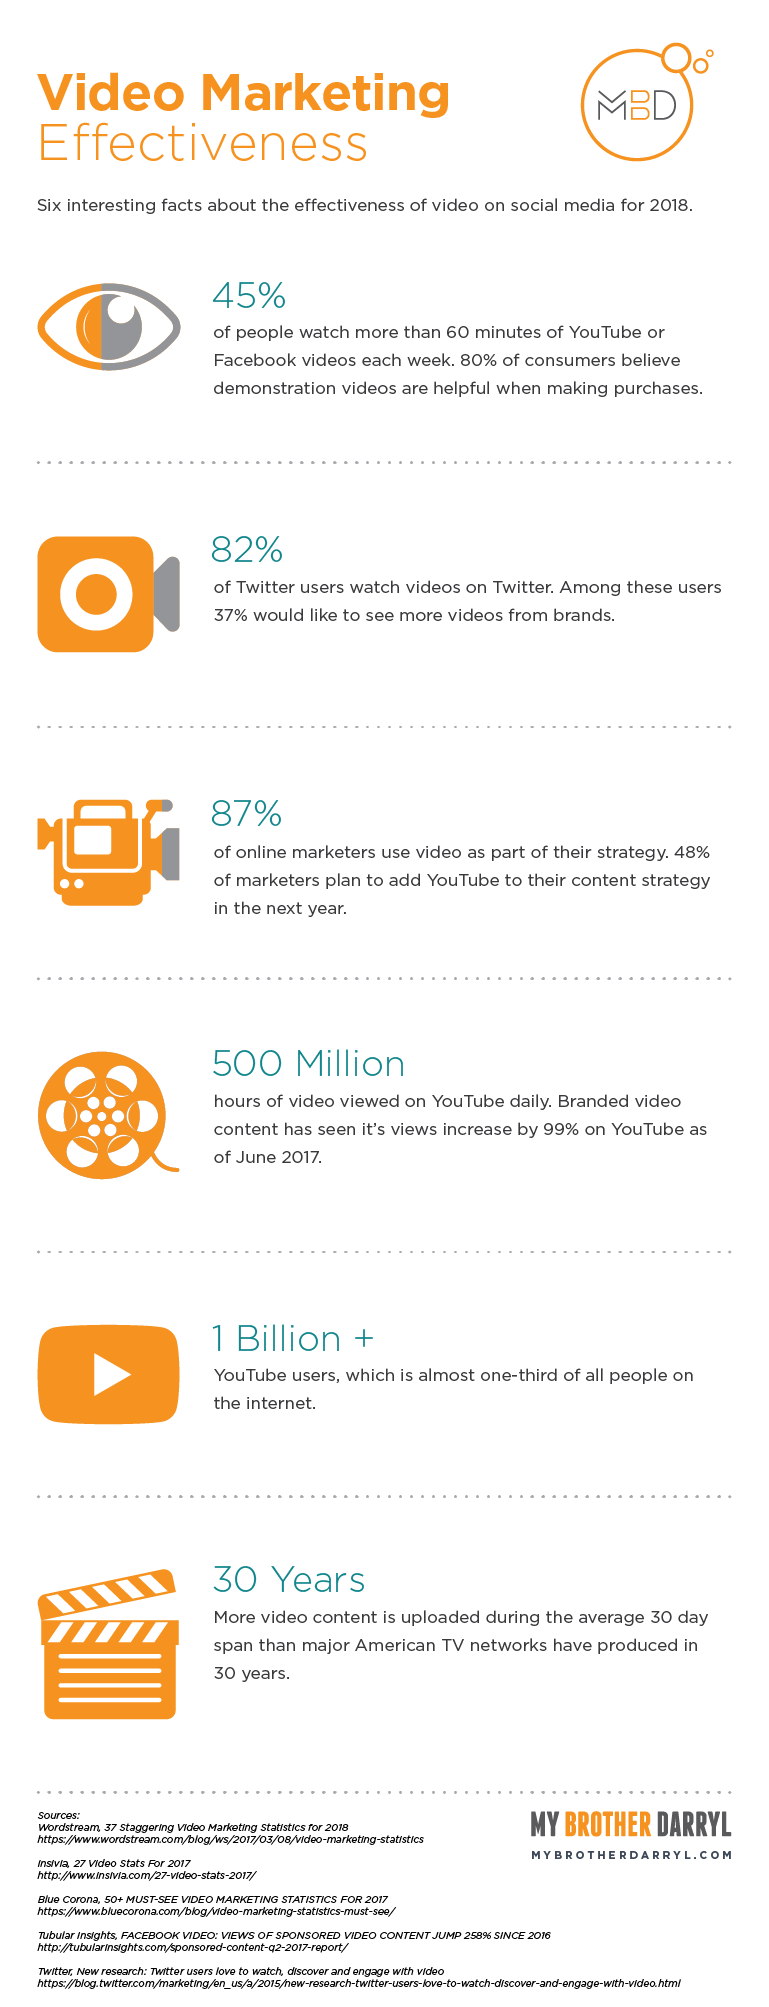 Video Marketing Effectiveness